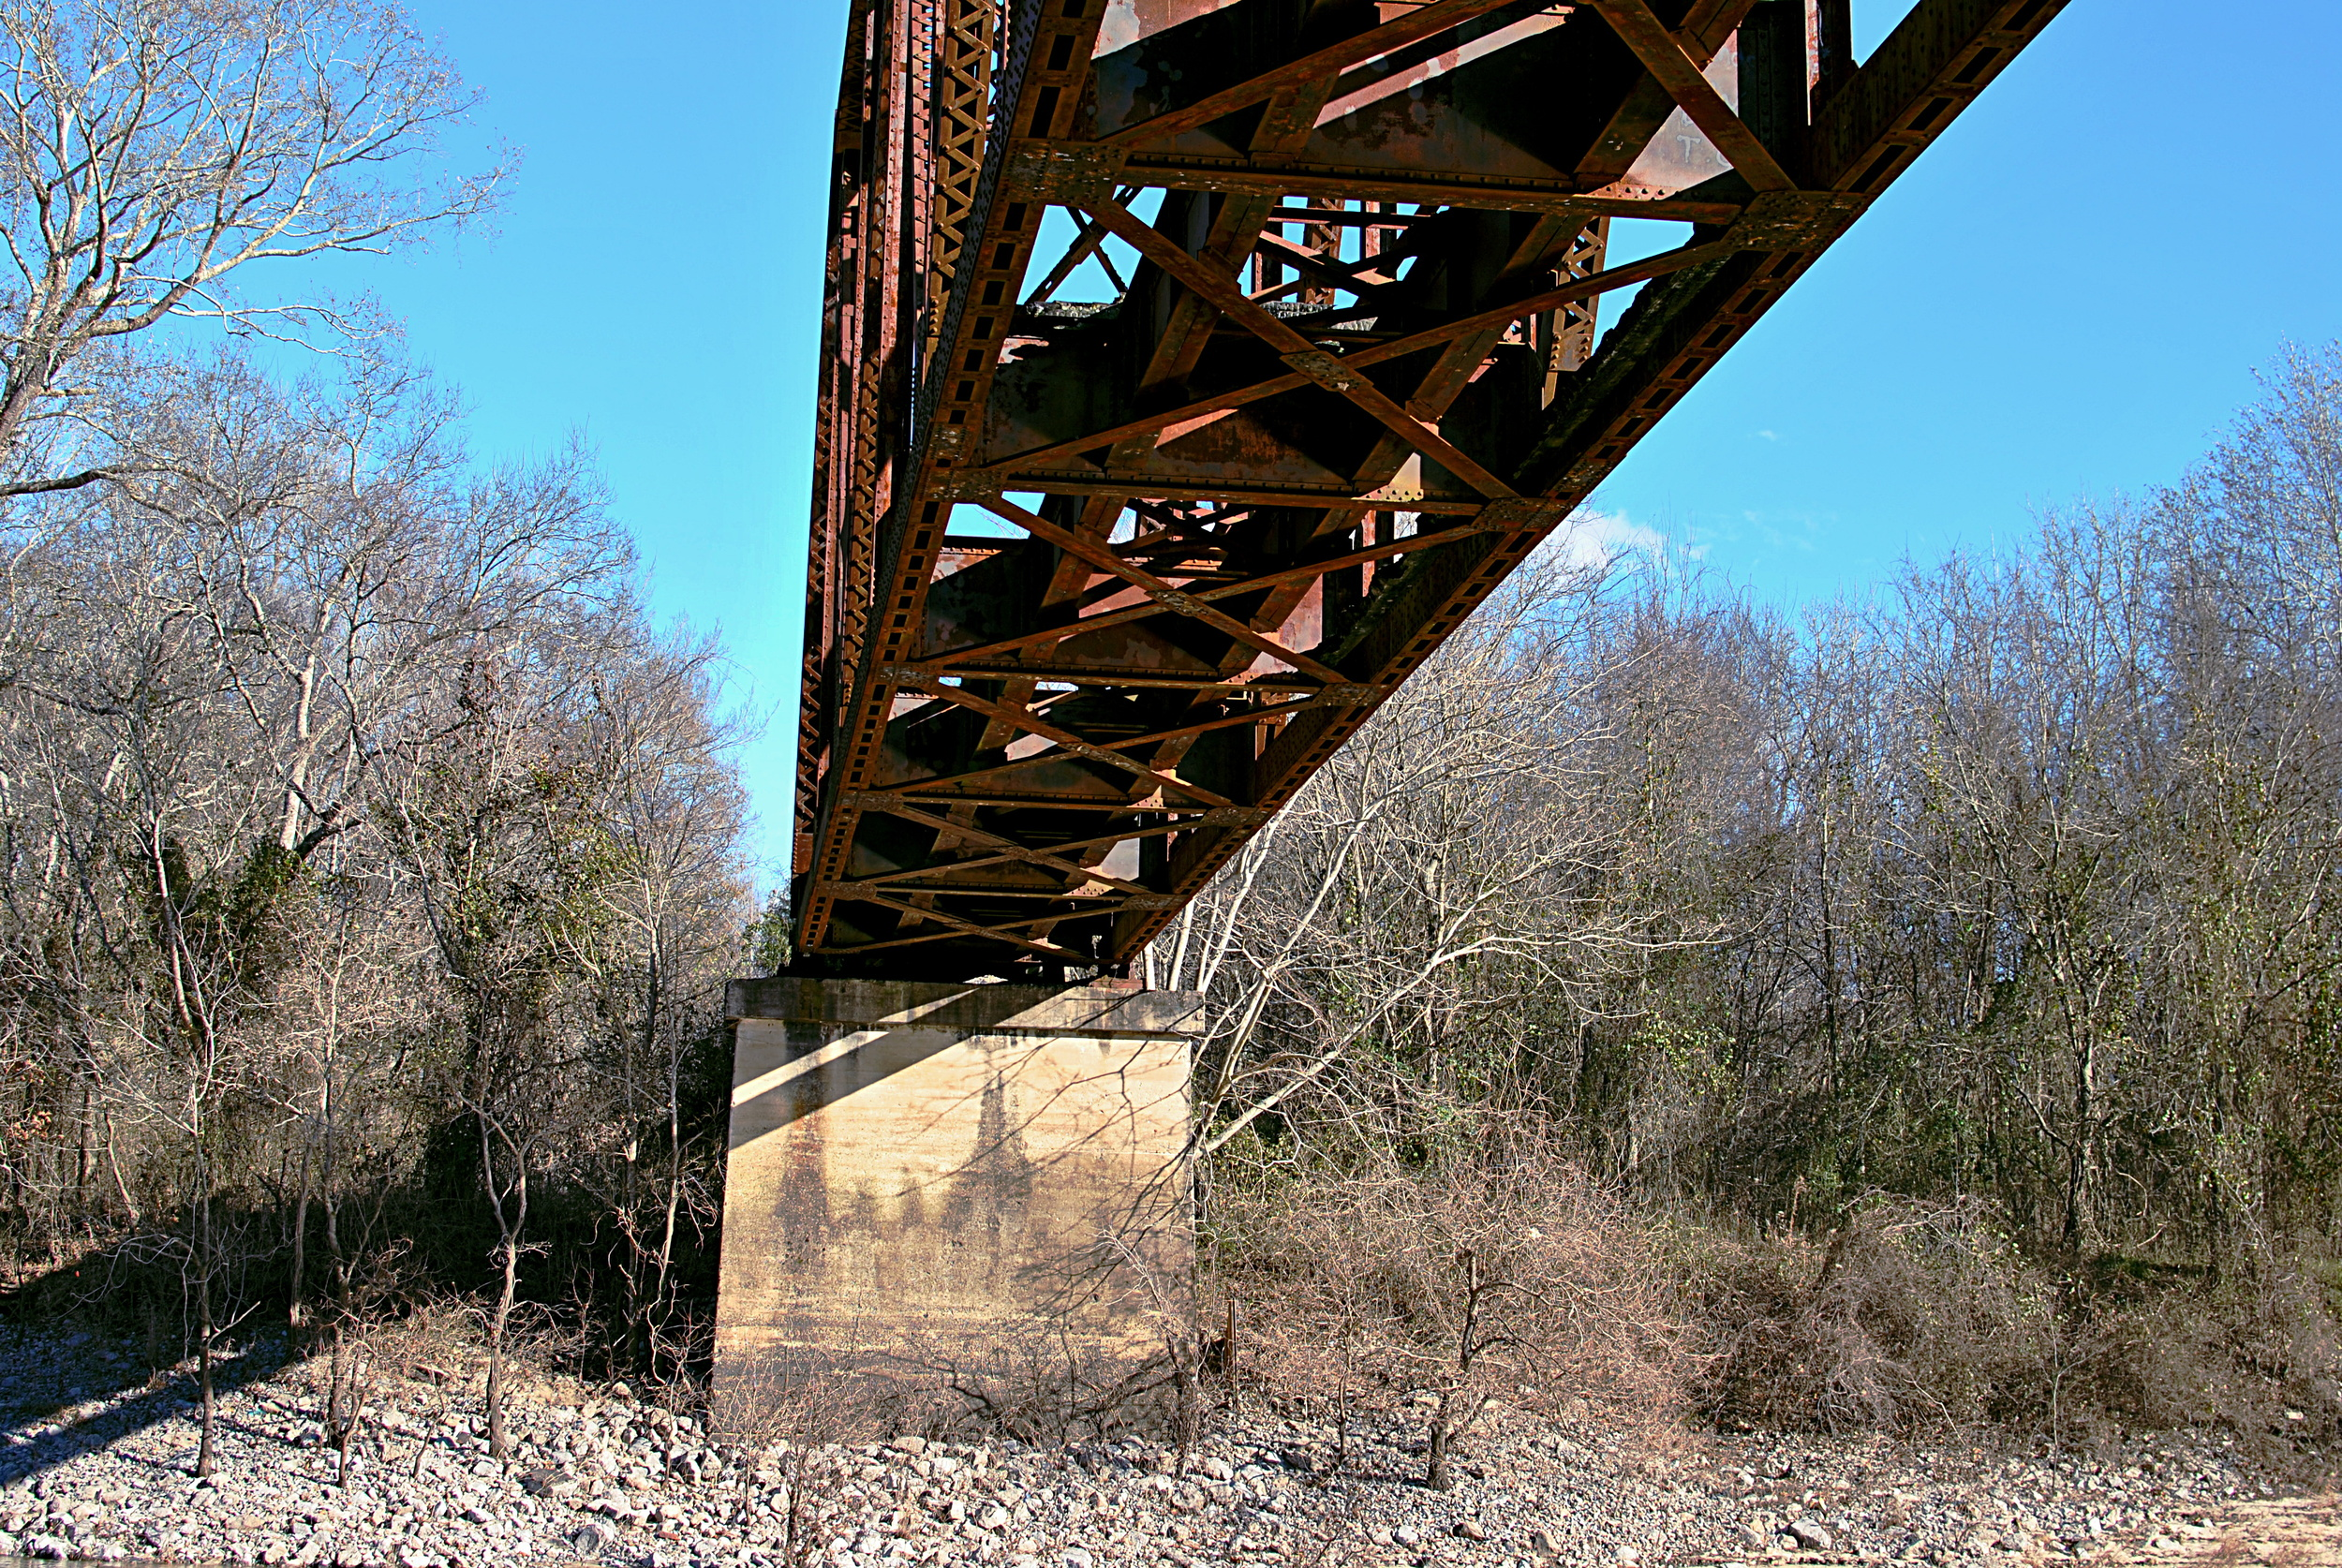 Bolivar had come to Hinds county to find love. Instead, he found archaic transportation infrastructure in bad repair.